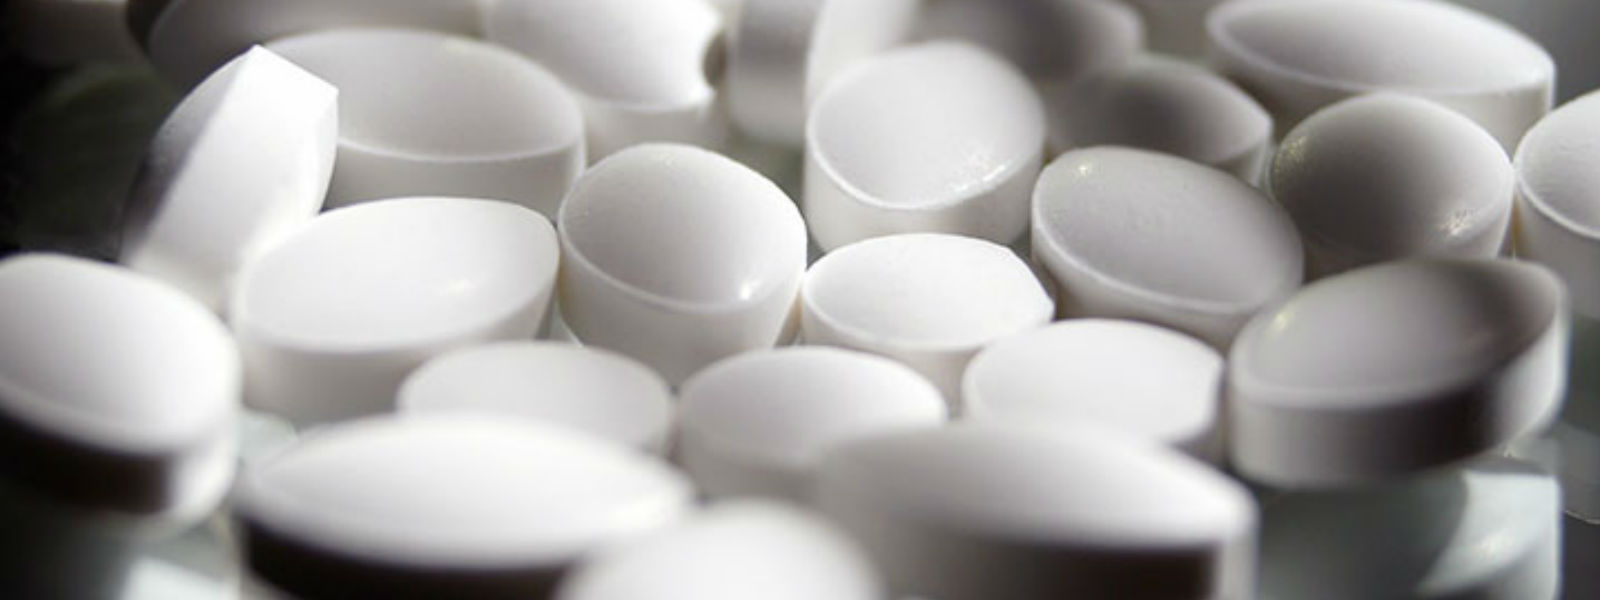 Suspect arrested with pills worth over Rs. 27 million